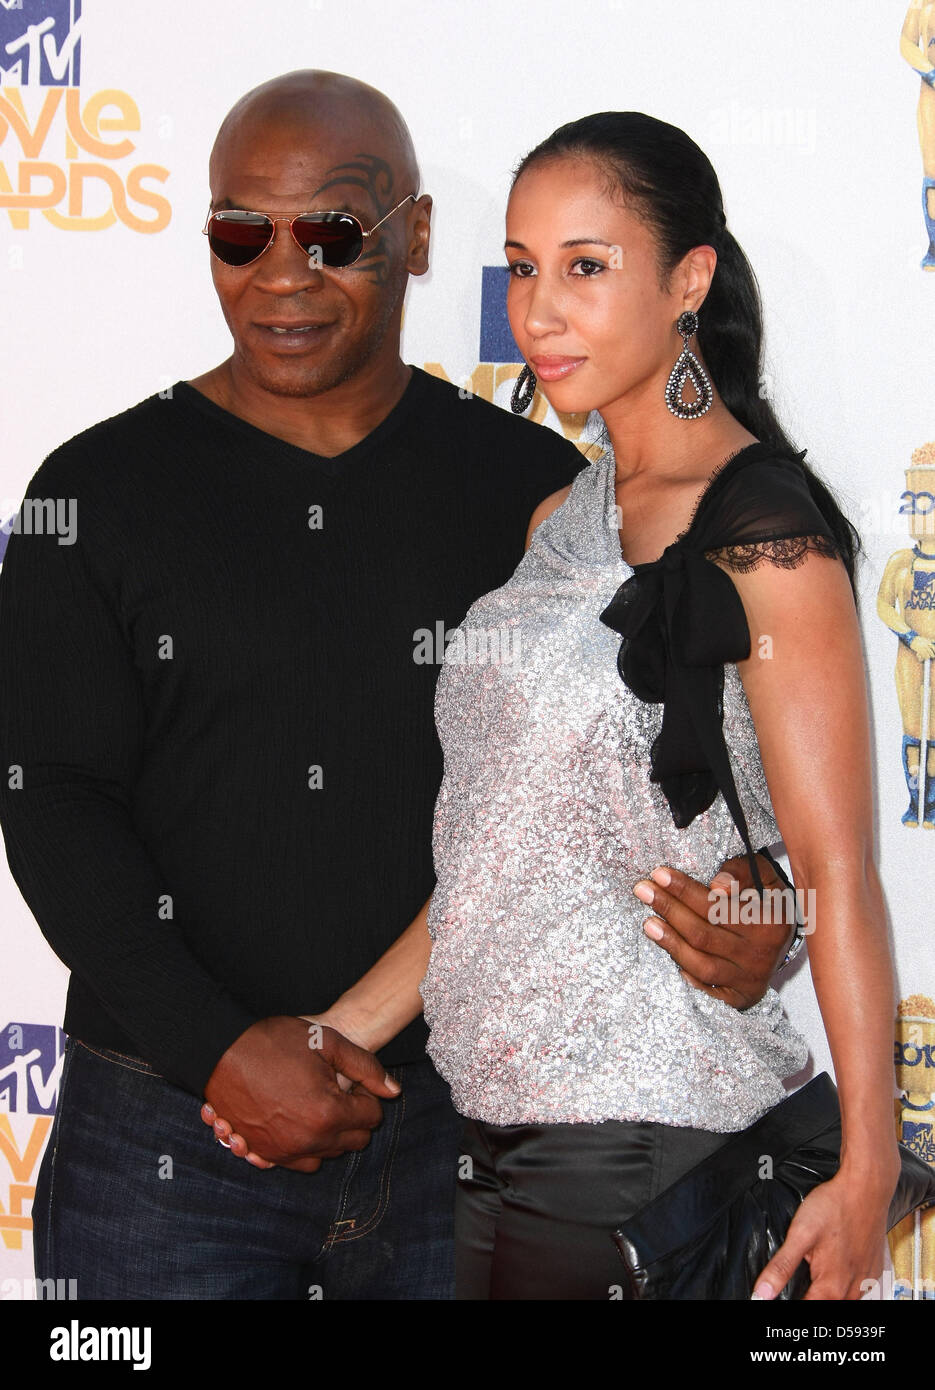 former boxing champion mike tyson and his wife lakiha spicer arrive